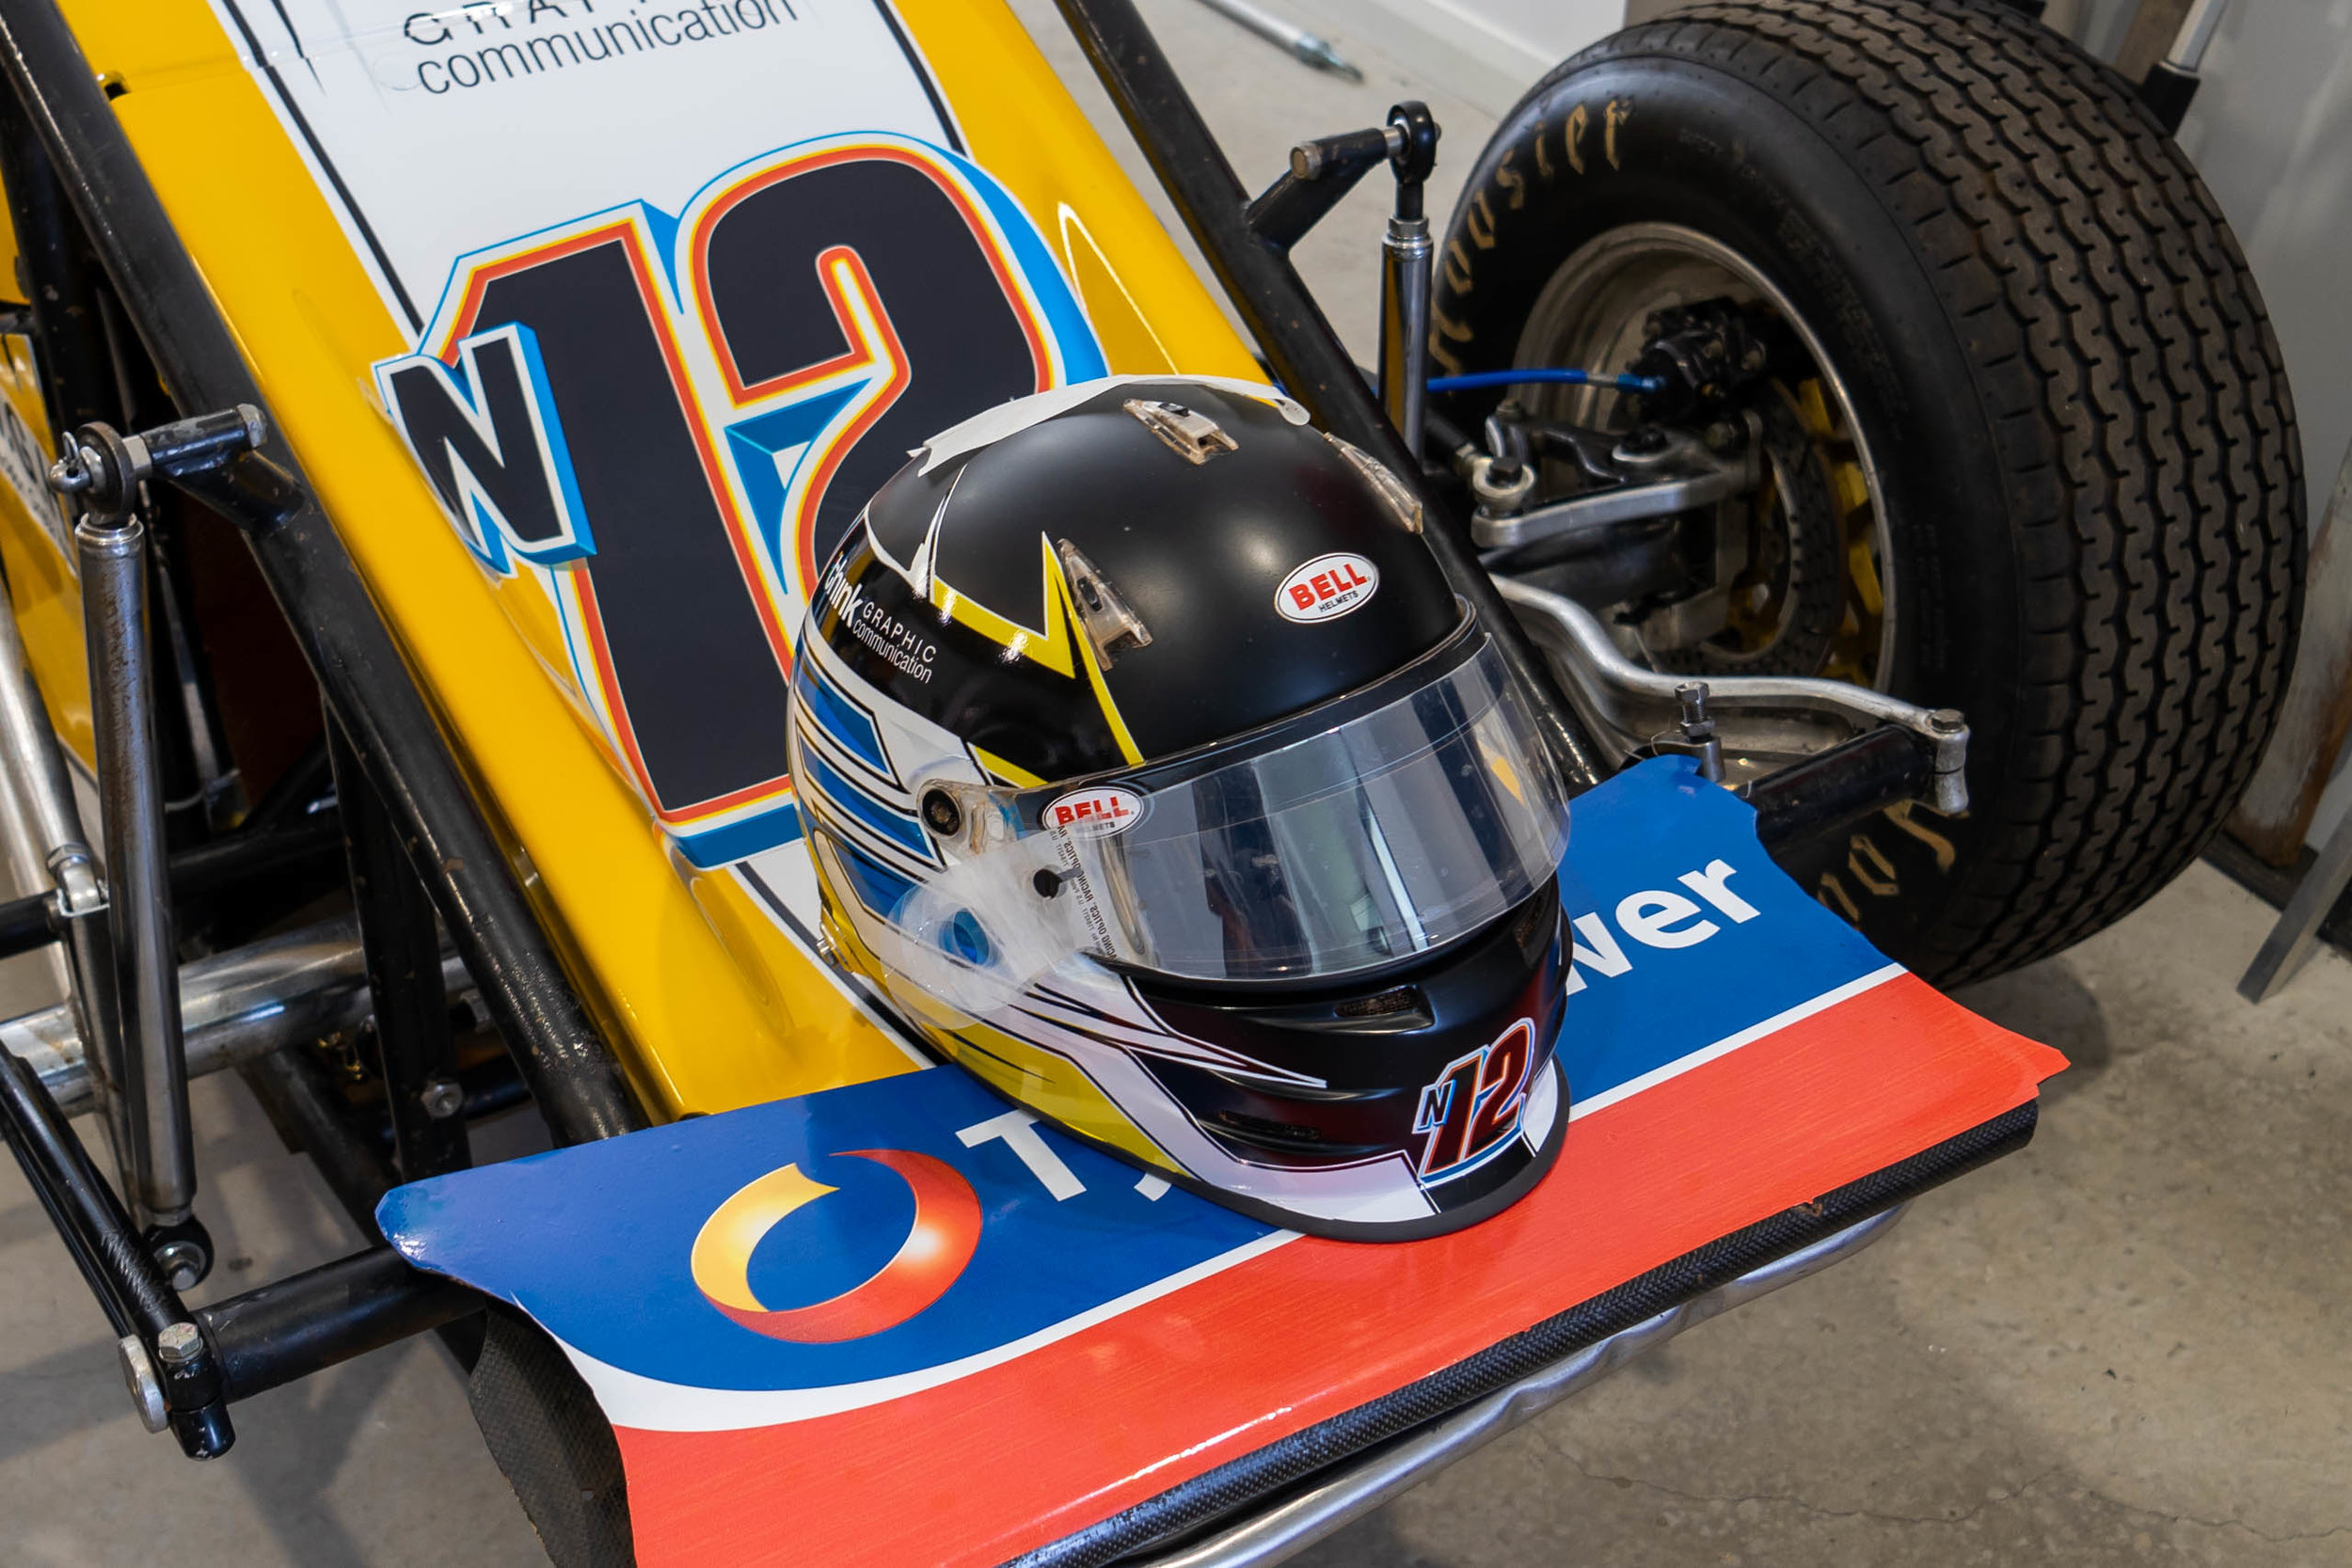 Gardiner motorsports racer think graphic communication helmet wrap.jpg